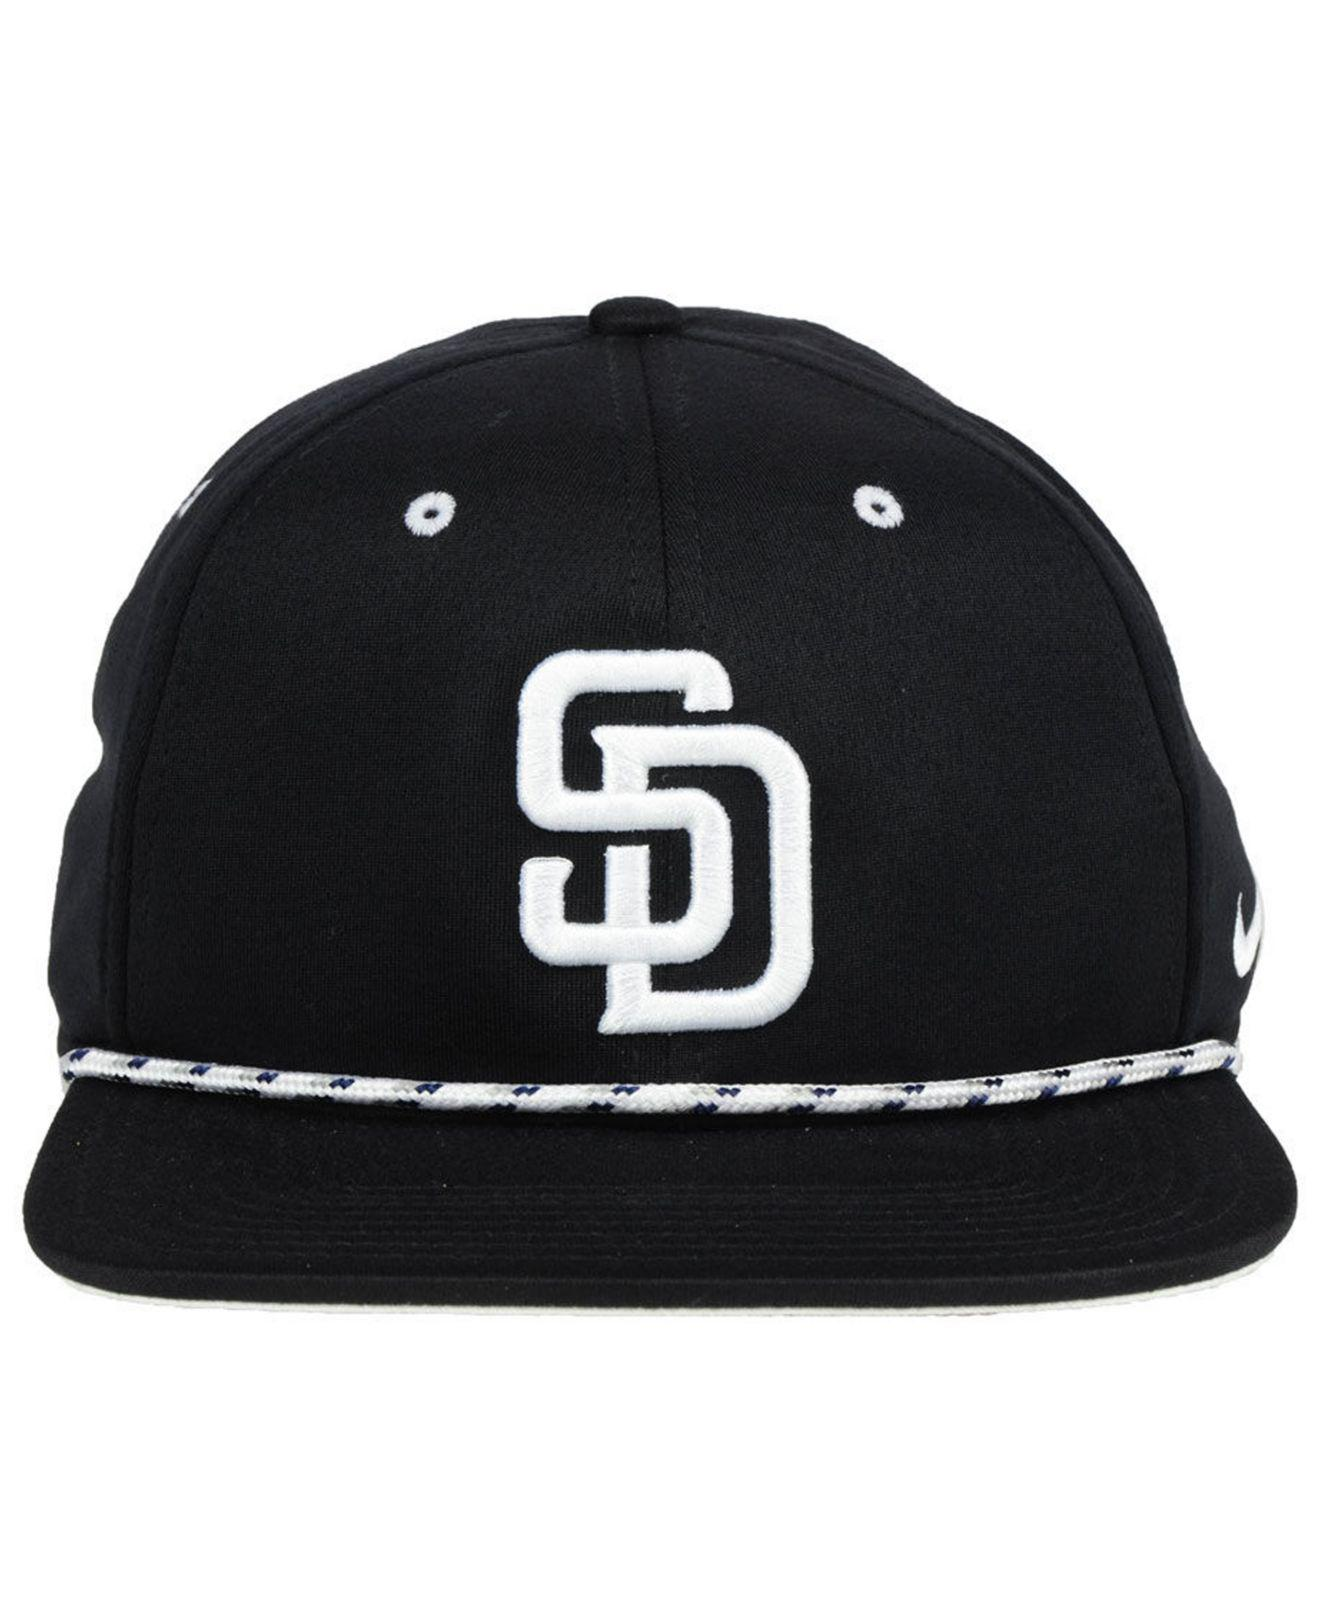 c6f29370 ... reduced lyst nike san diego padres string bill snapback cap in black  for men 8ee8b b60ed